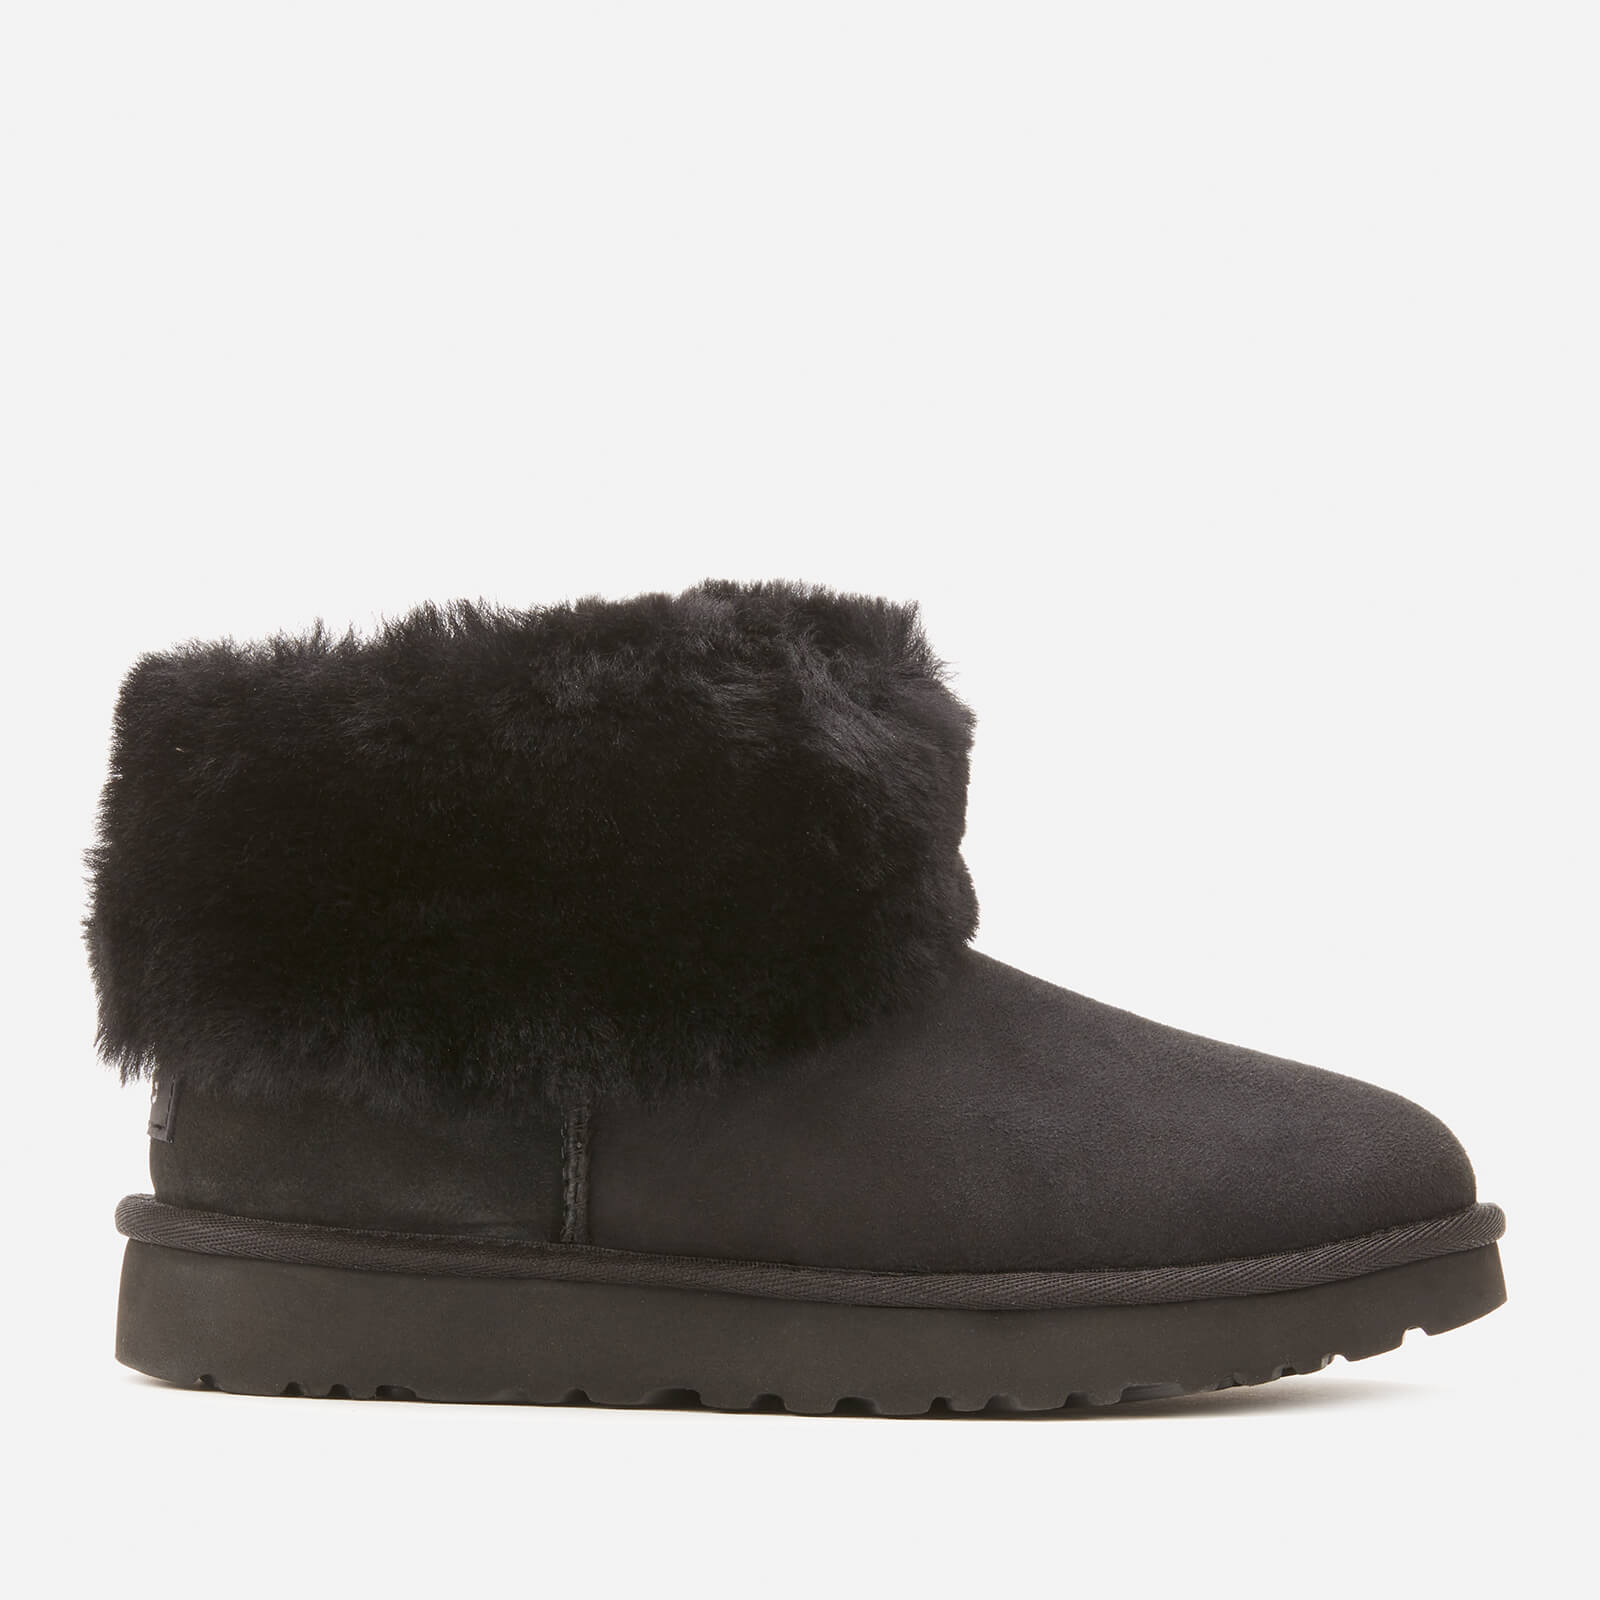 UGG Women's Classic Mini Exposed Sheepskin Boots - Black - UK 5